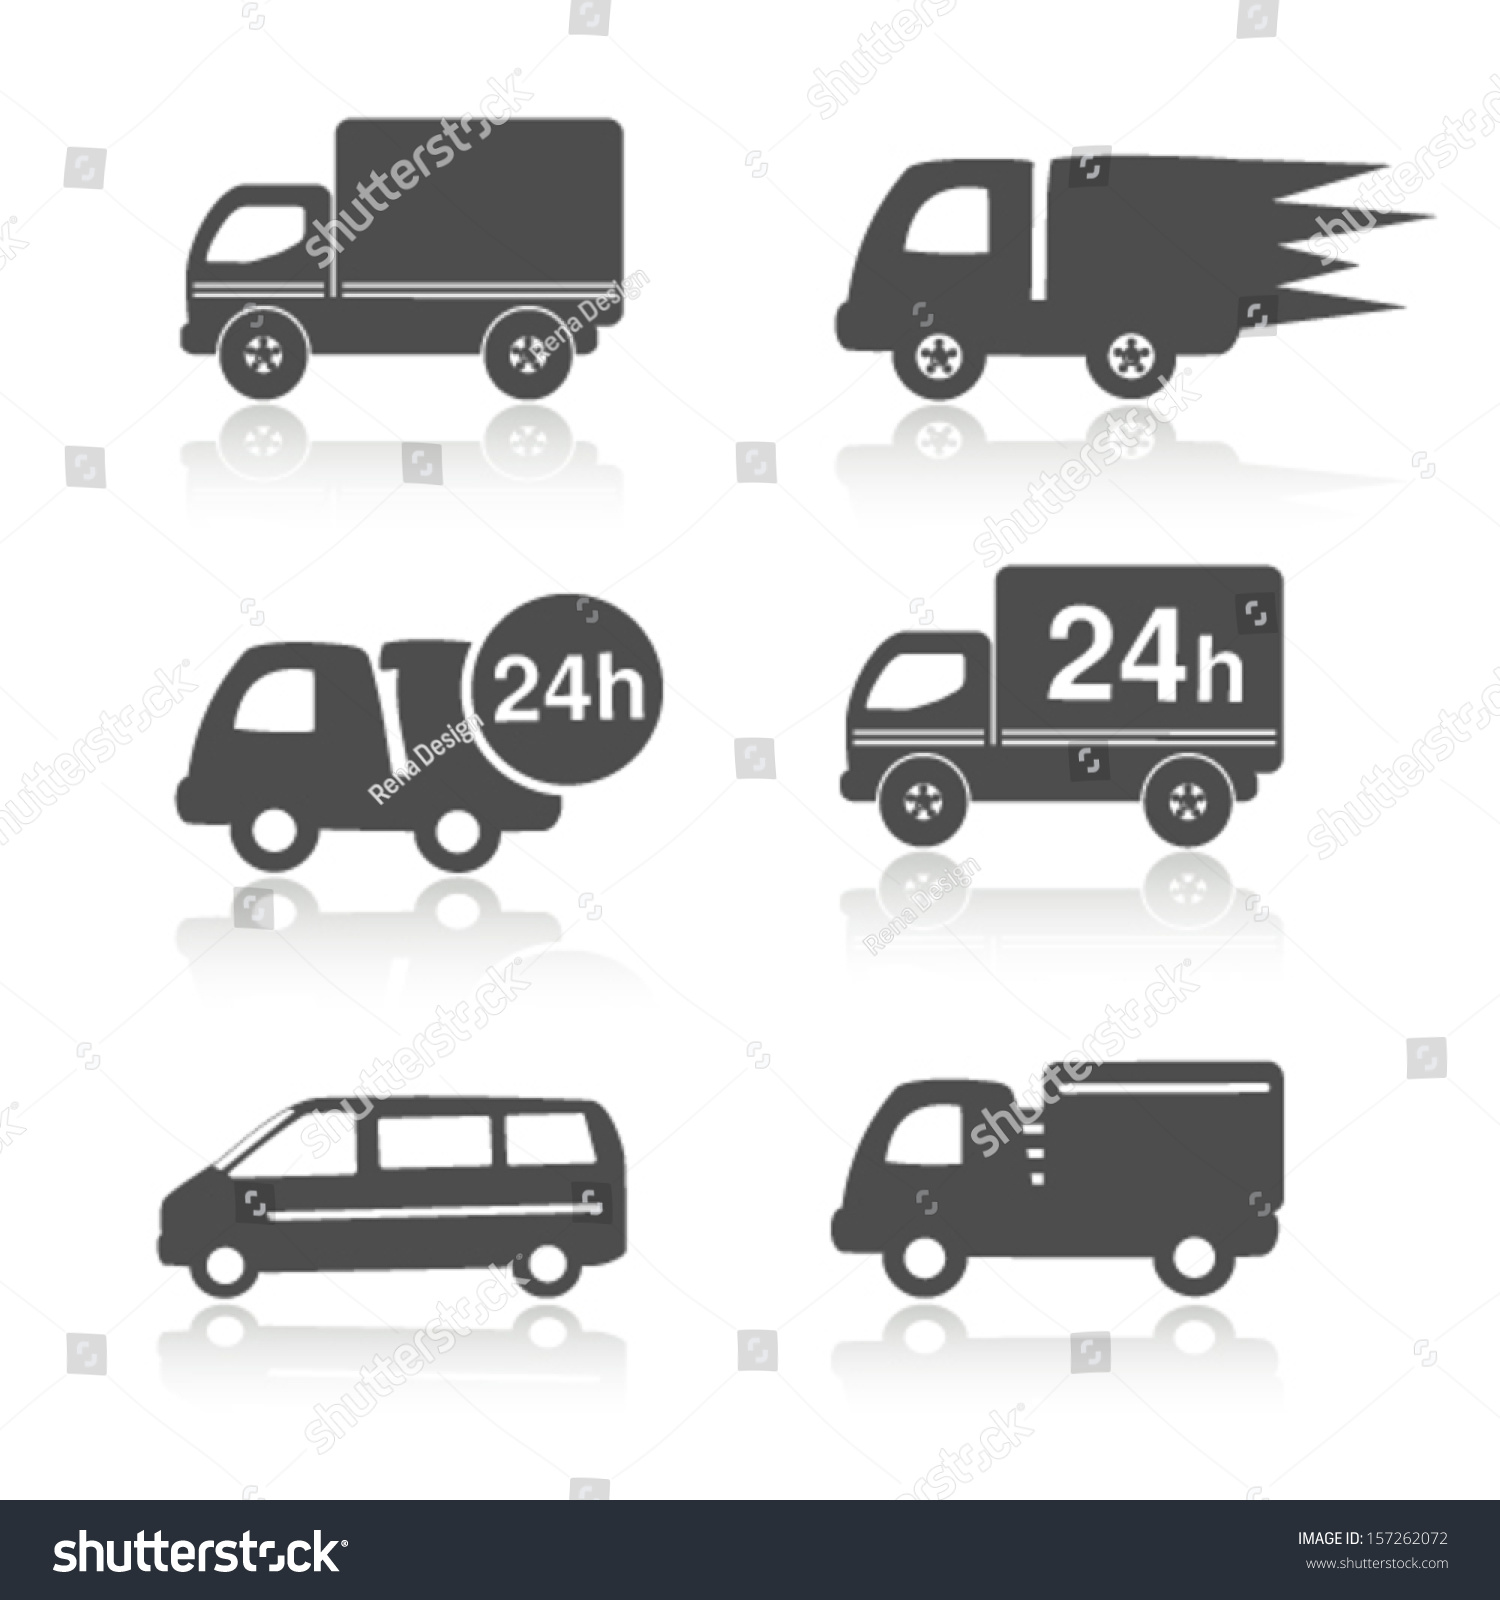 Vector Truck Symbols Shadow Delivery Within Stock Vector 157262072 ...